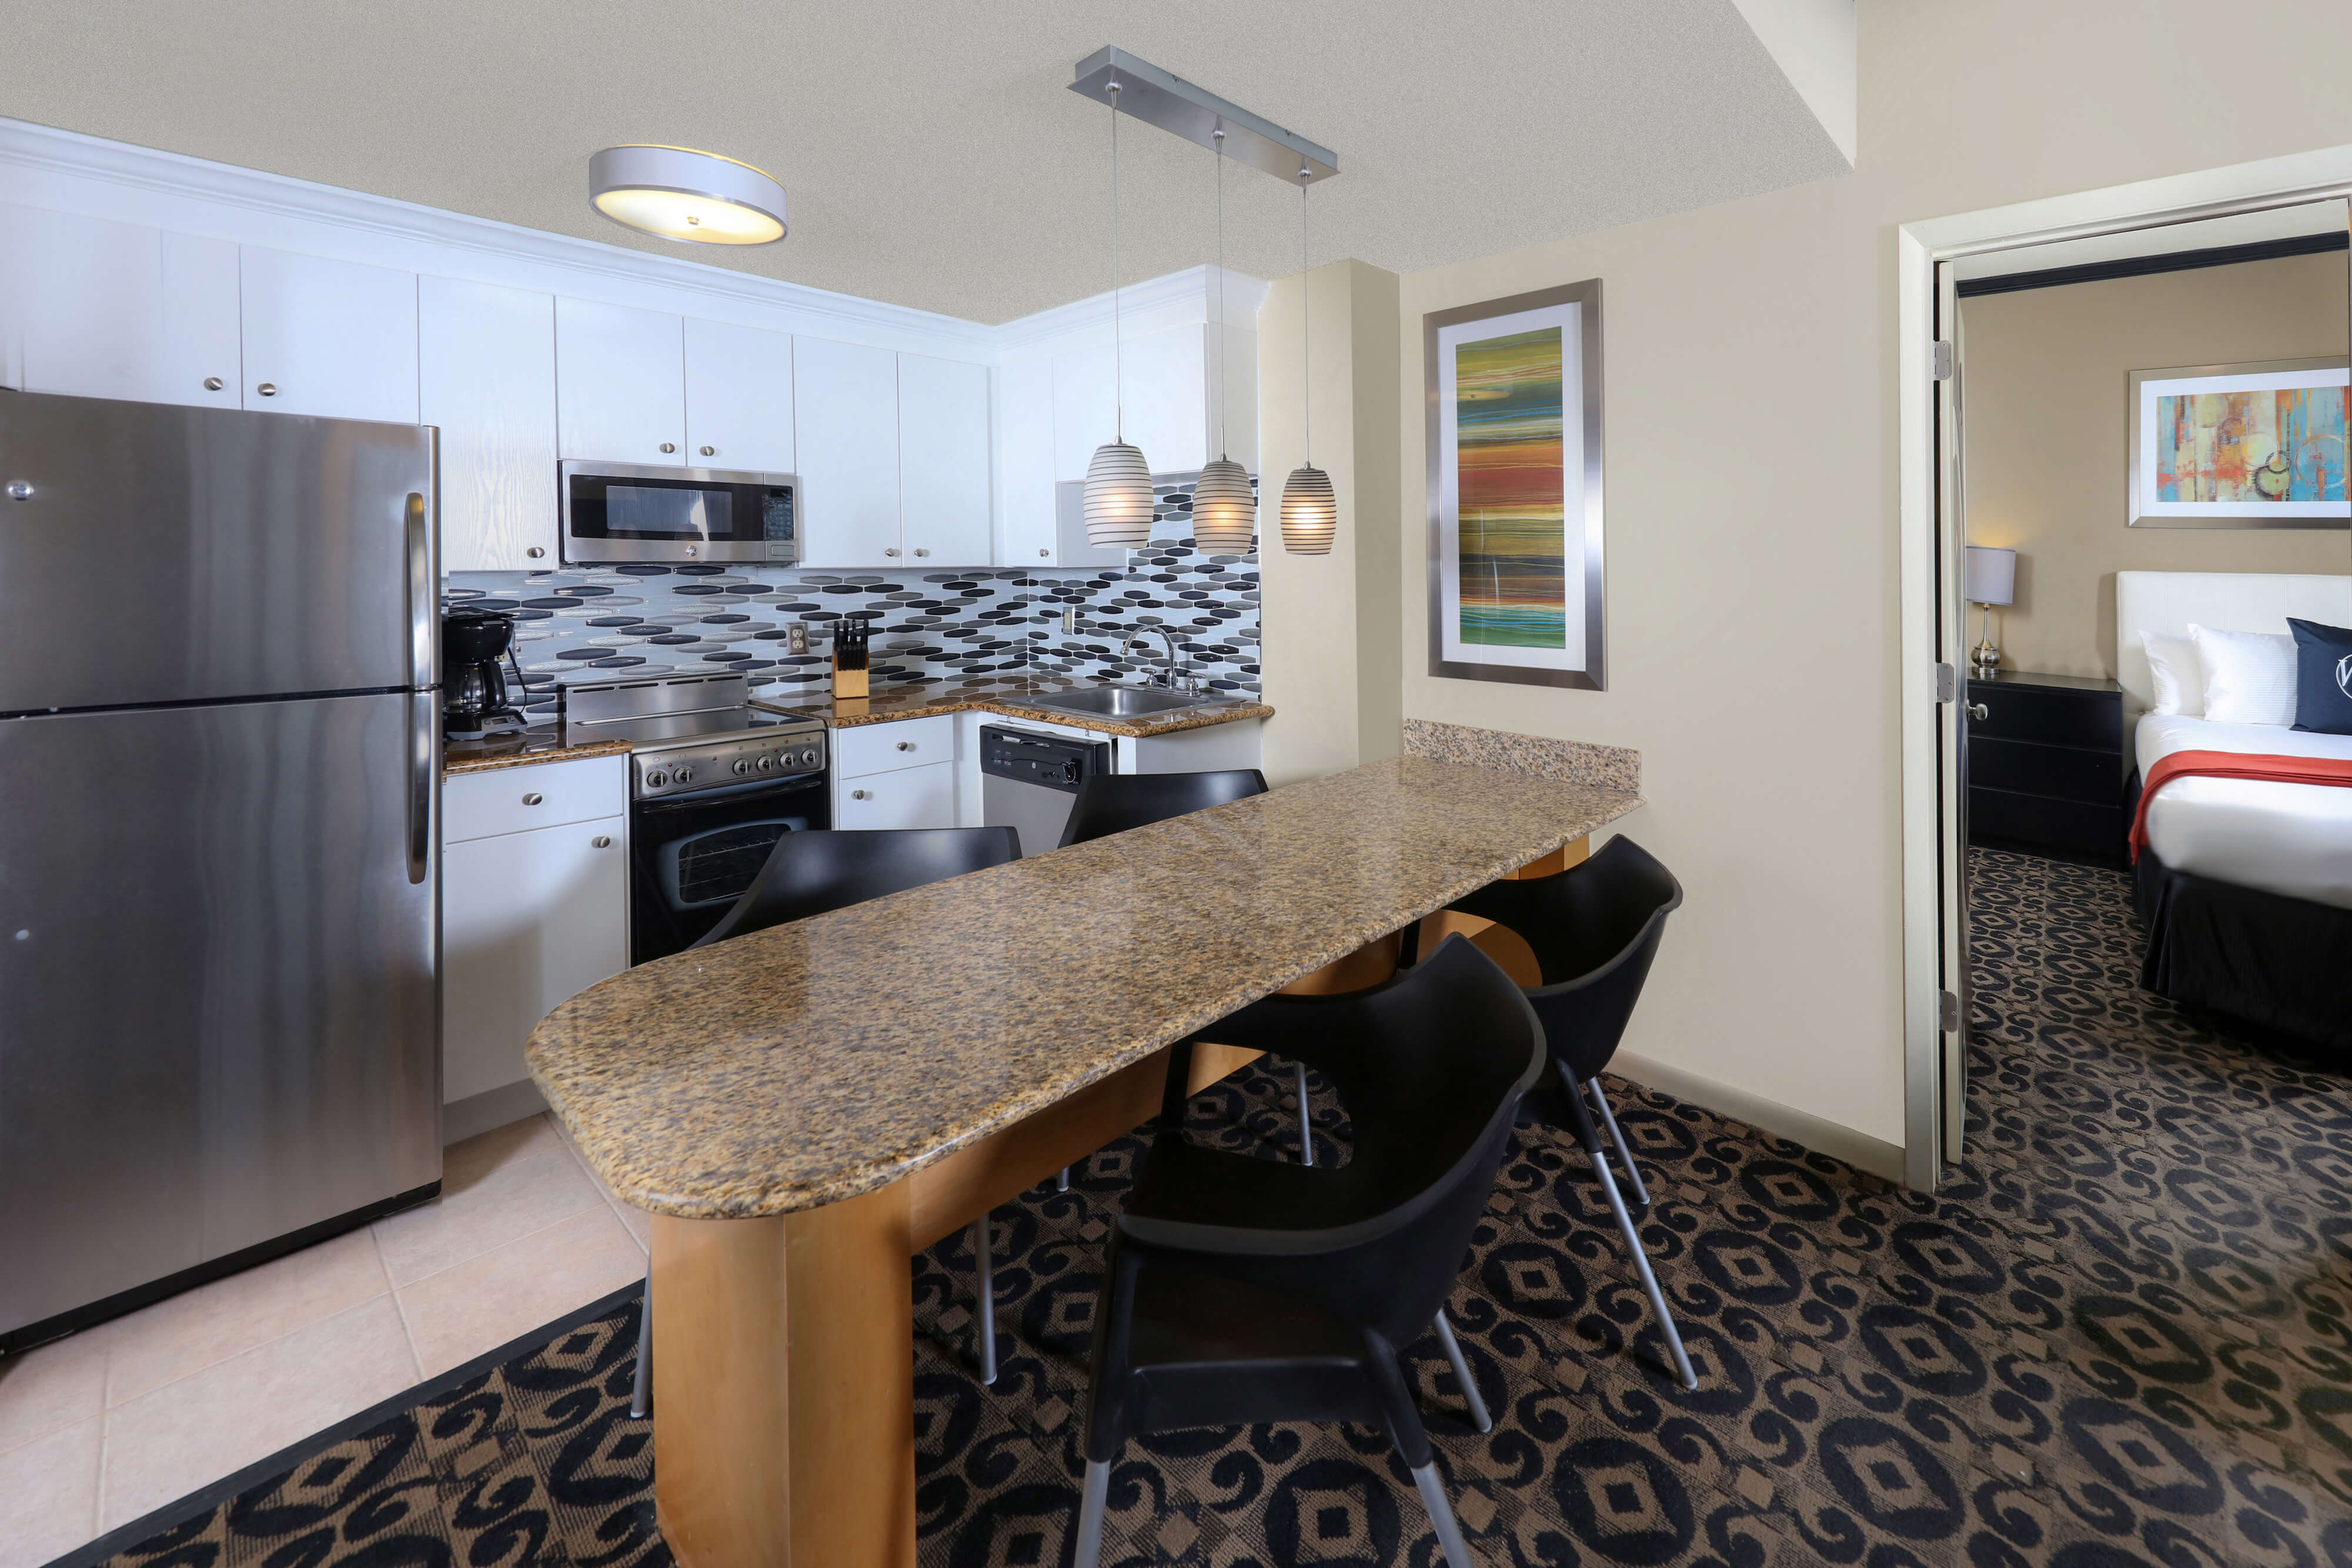 Kitchen in One-Bedroom Oceanfront Villas at our Miami Beach oceanfront resorts | Westgate South Beach Oceanfront Resort | Westgate Resorts